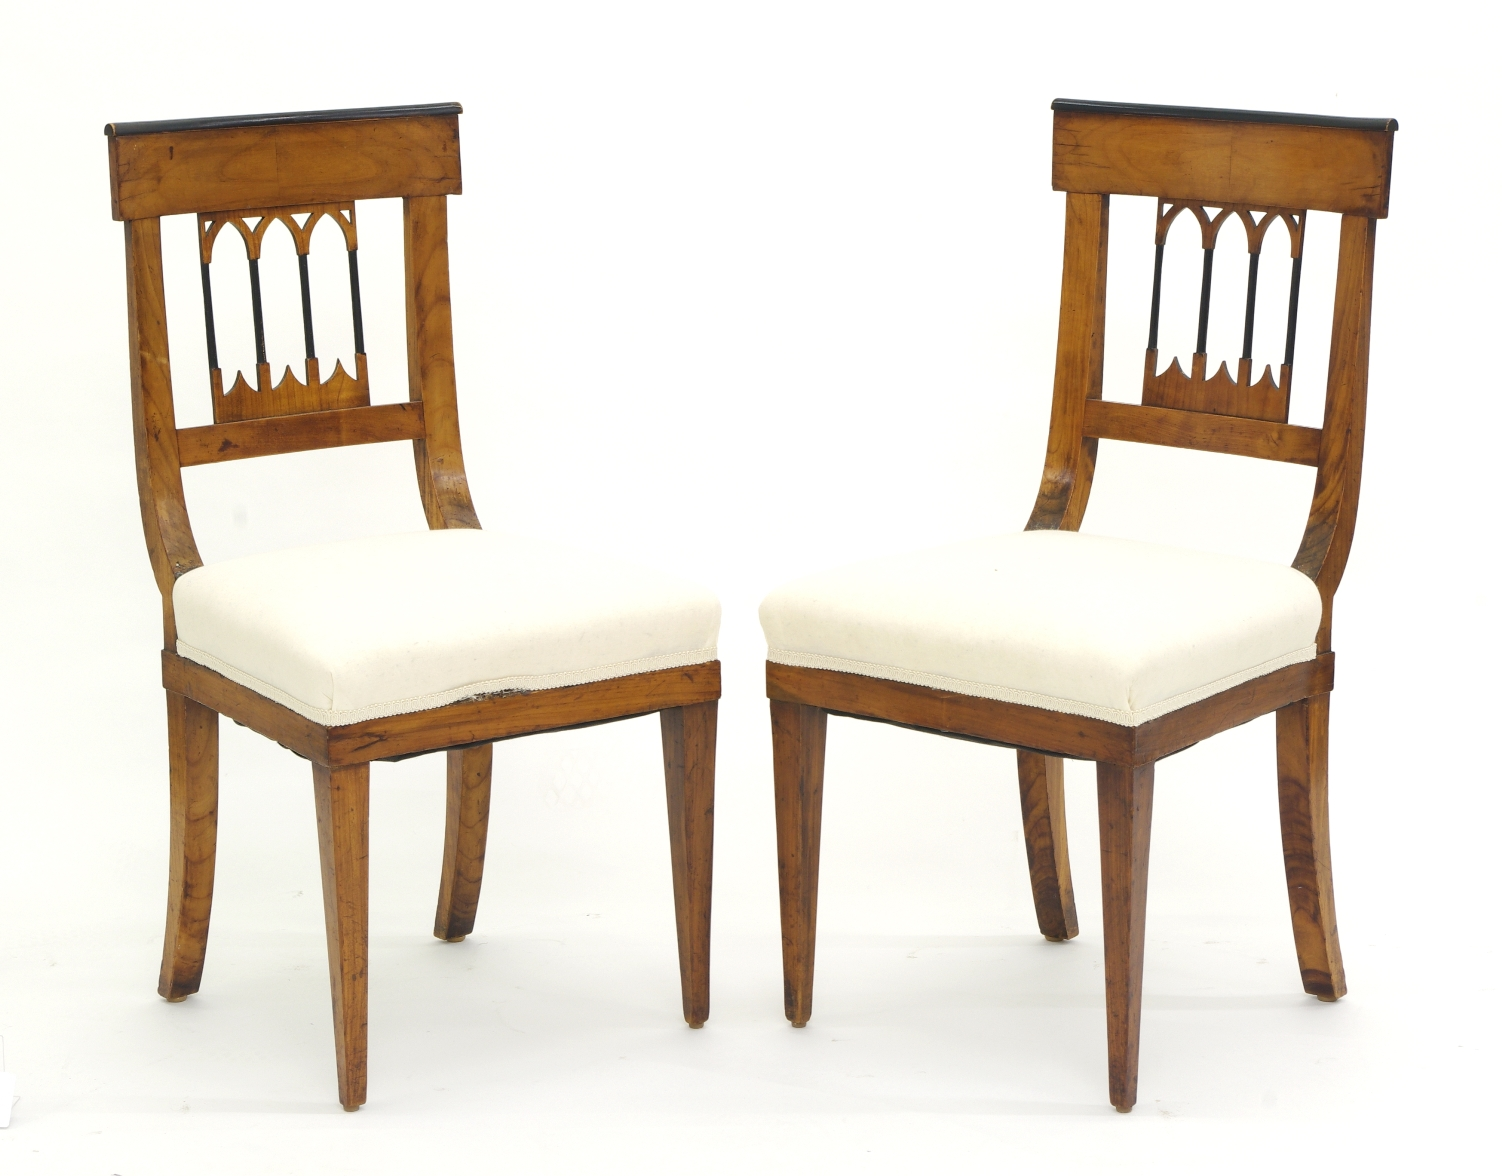 View 2: Set of Four Biedermeier Side Chairs, c. 1810-20